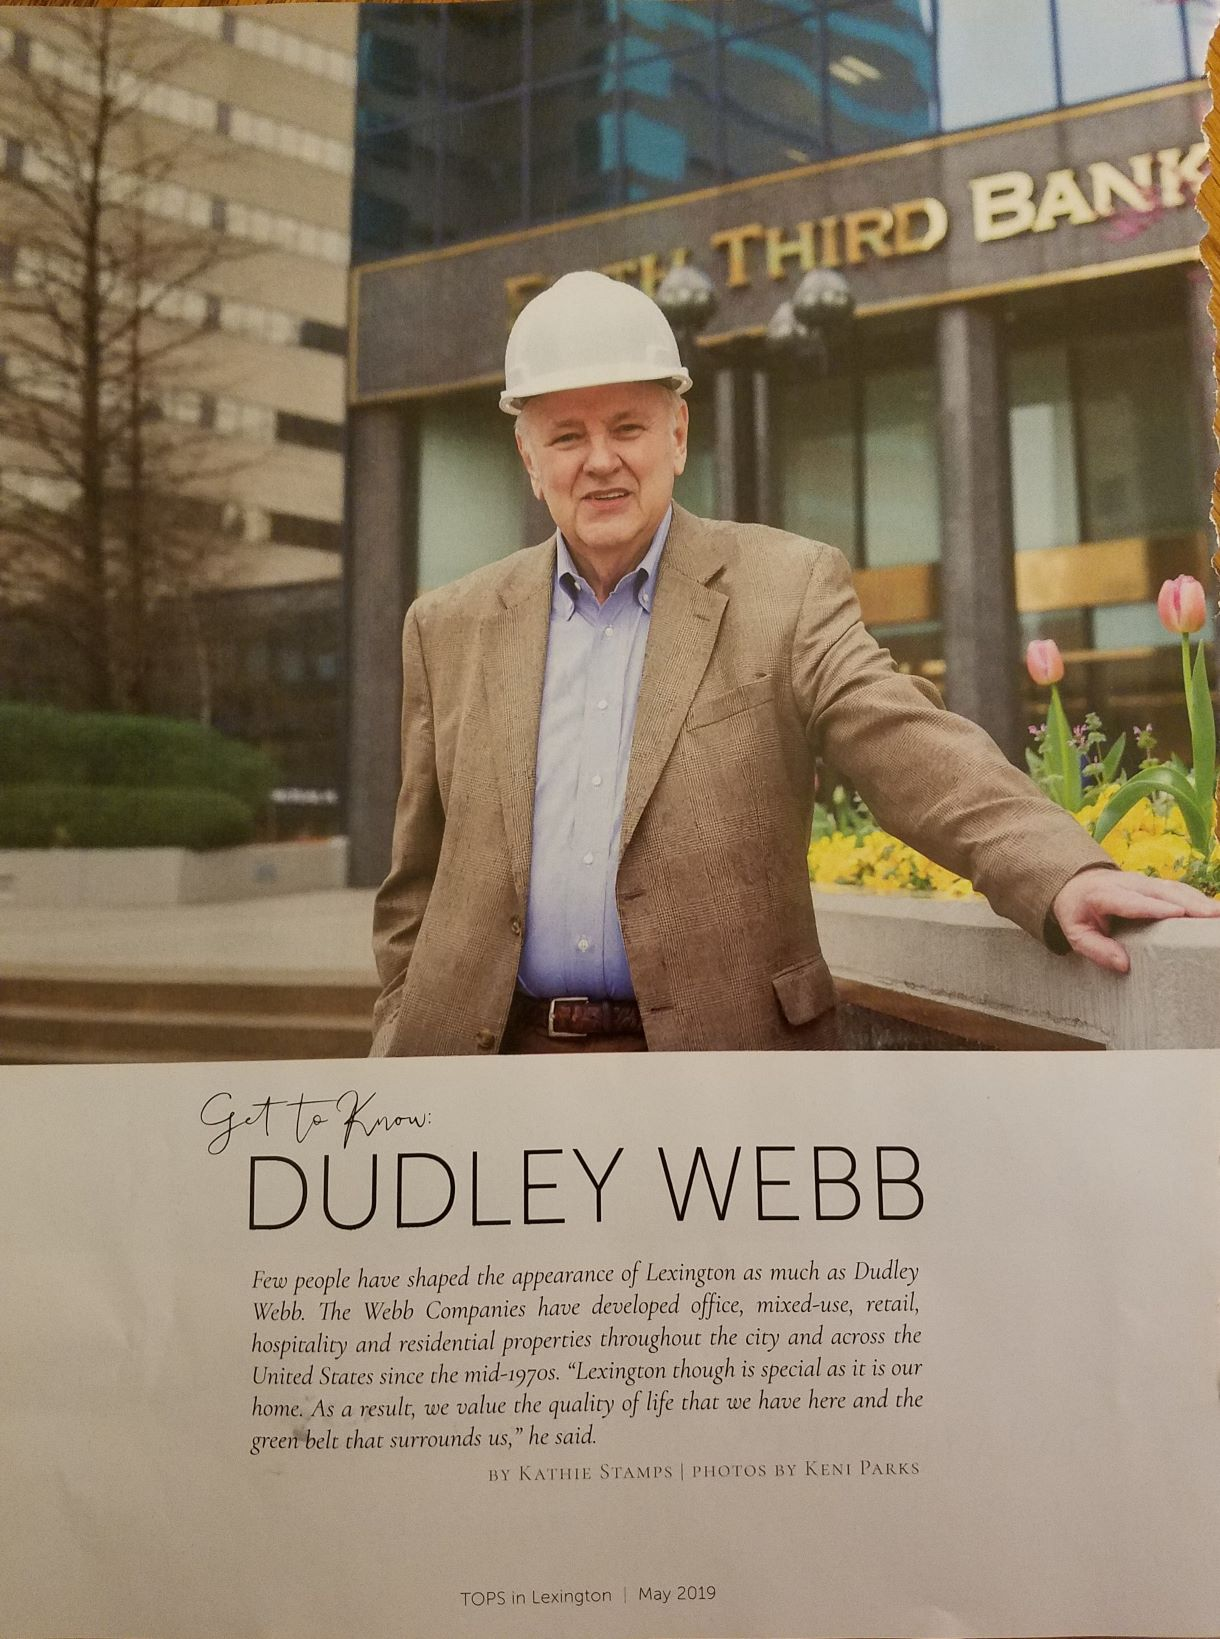 Profile of Dudley Webb in TOPS magazine.